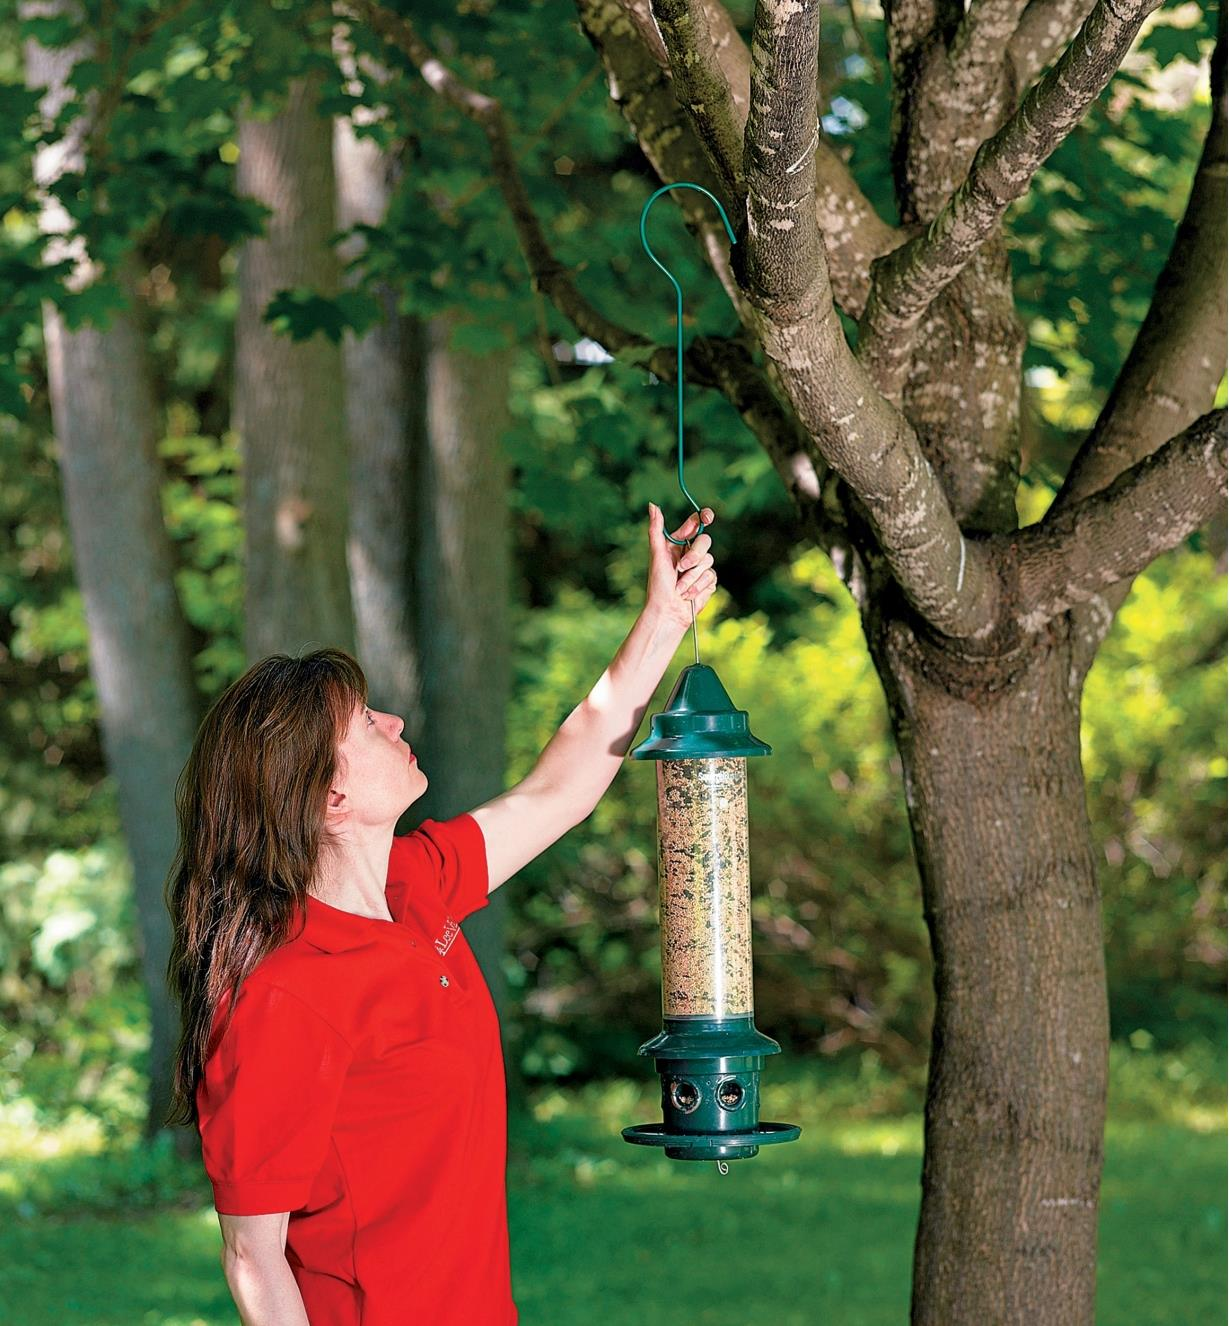 Hanging a bird feeder in a tree using a large garden hook